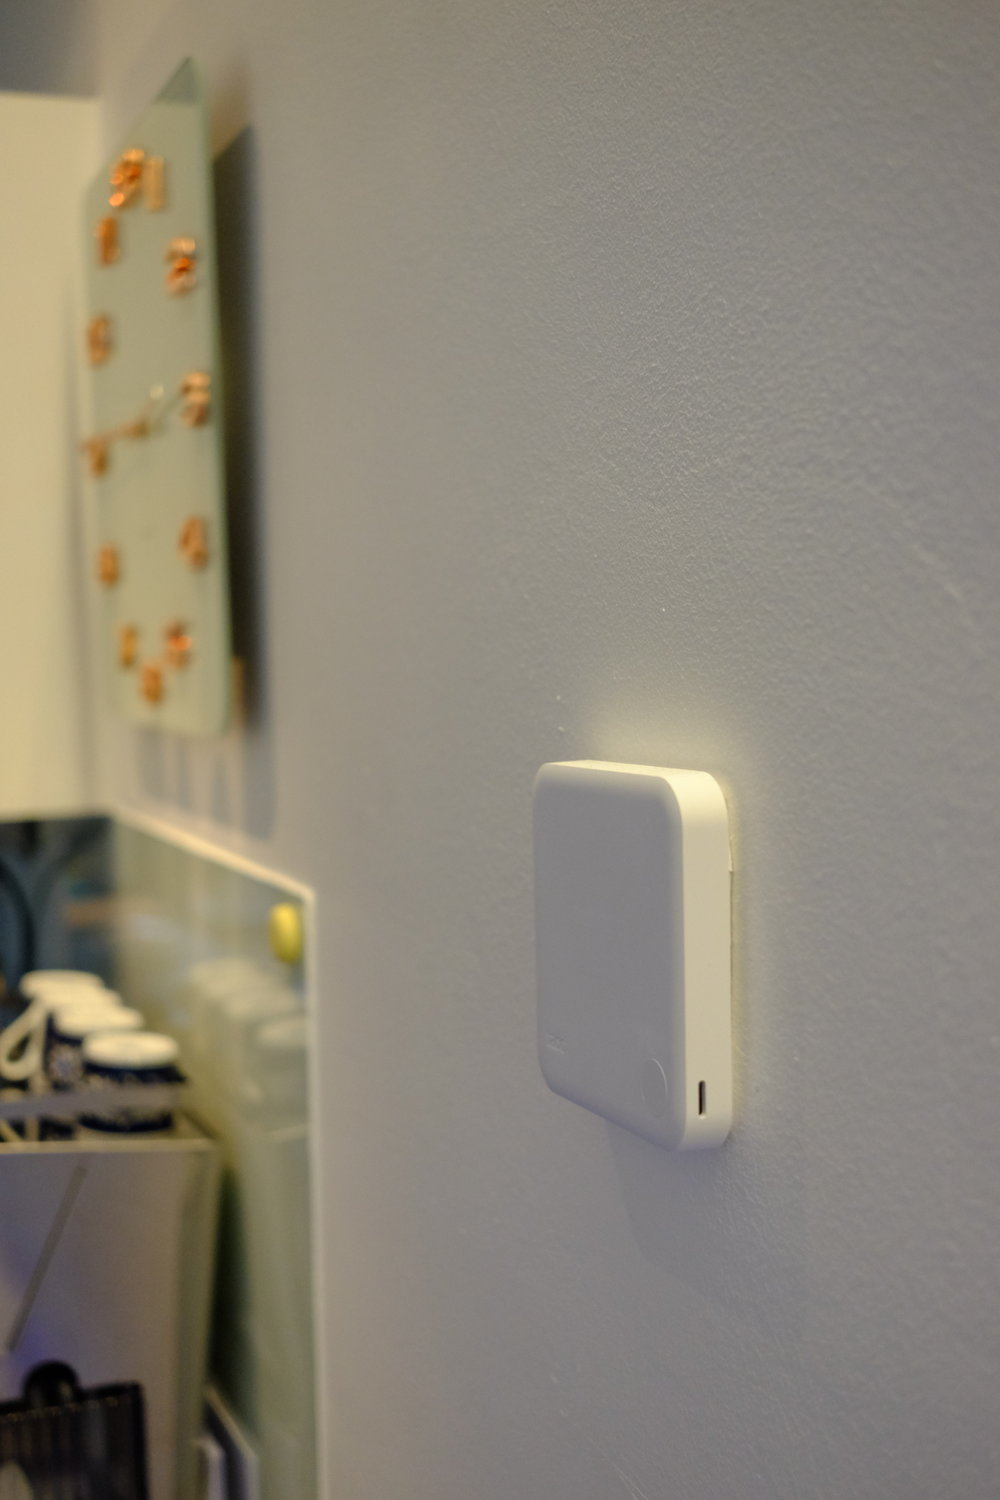 The Tado Thermostat disappears on the wall - Photograph Philippe Regnier